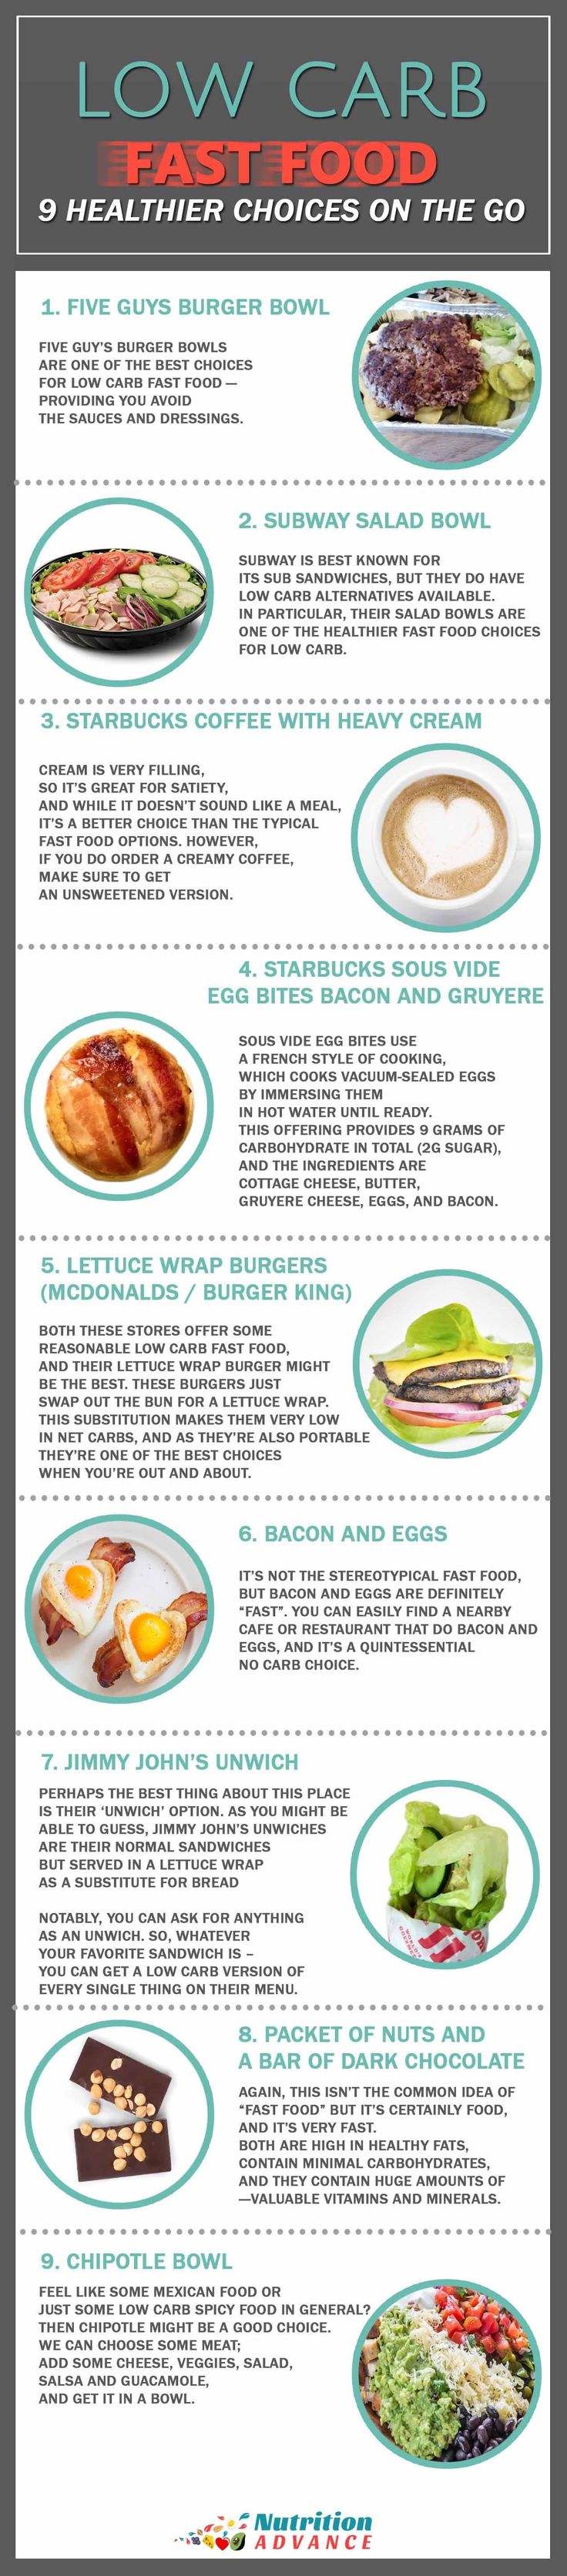 It's usually better to avoid fast food, but if you feel the need then here are some of the healthiest options - no matter where you are. Whether it's a typical fast food restaurant, cafe, or sandwich shop, here are some of the best low carb fast foods.